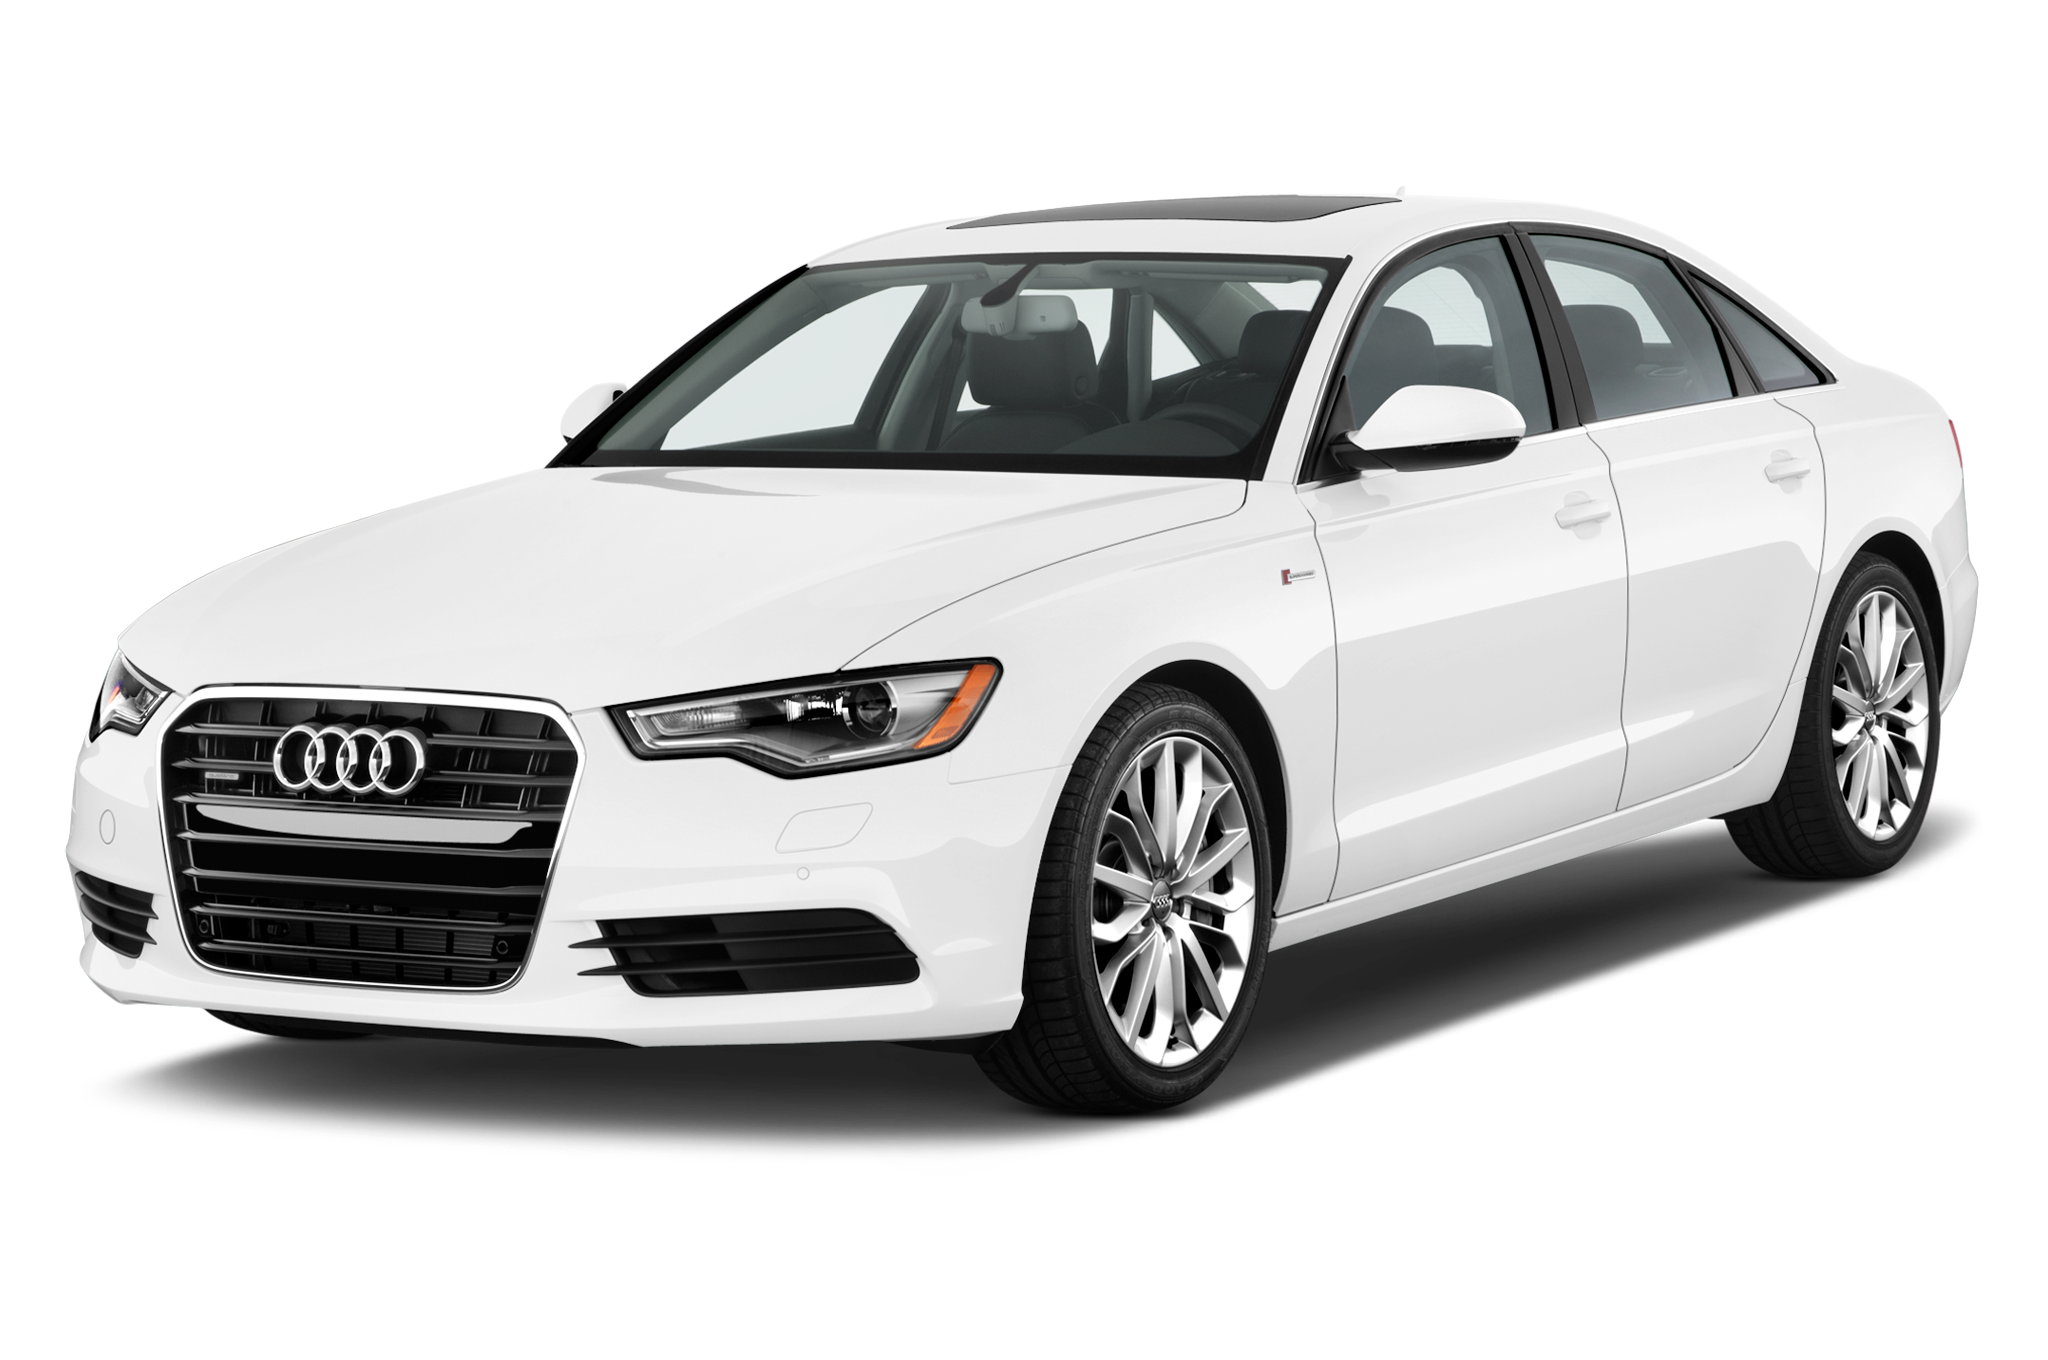 2016 Audi A6 To Arrive With Updated Styling New Technology